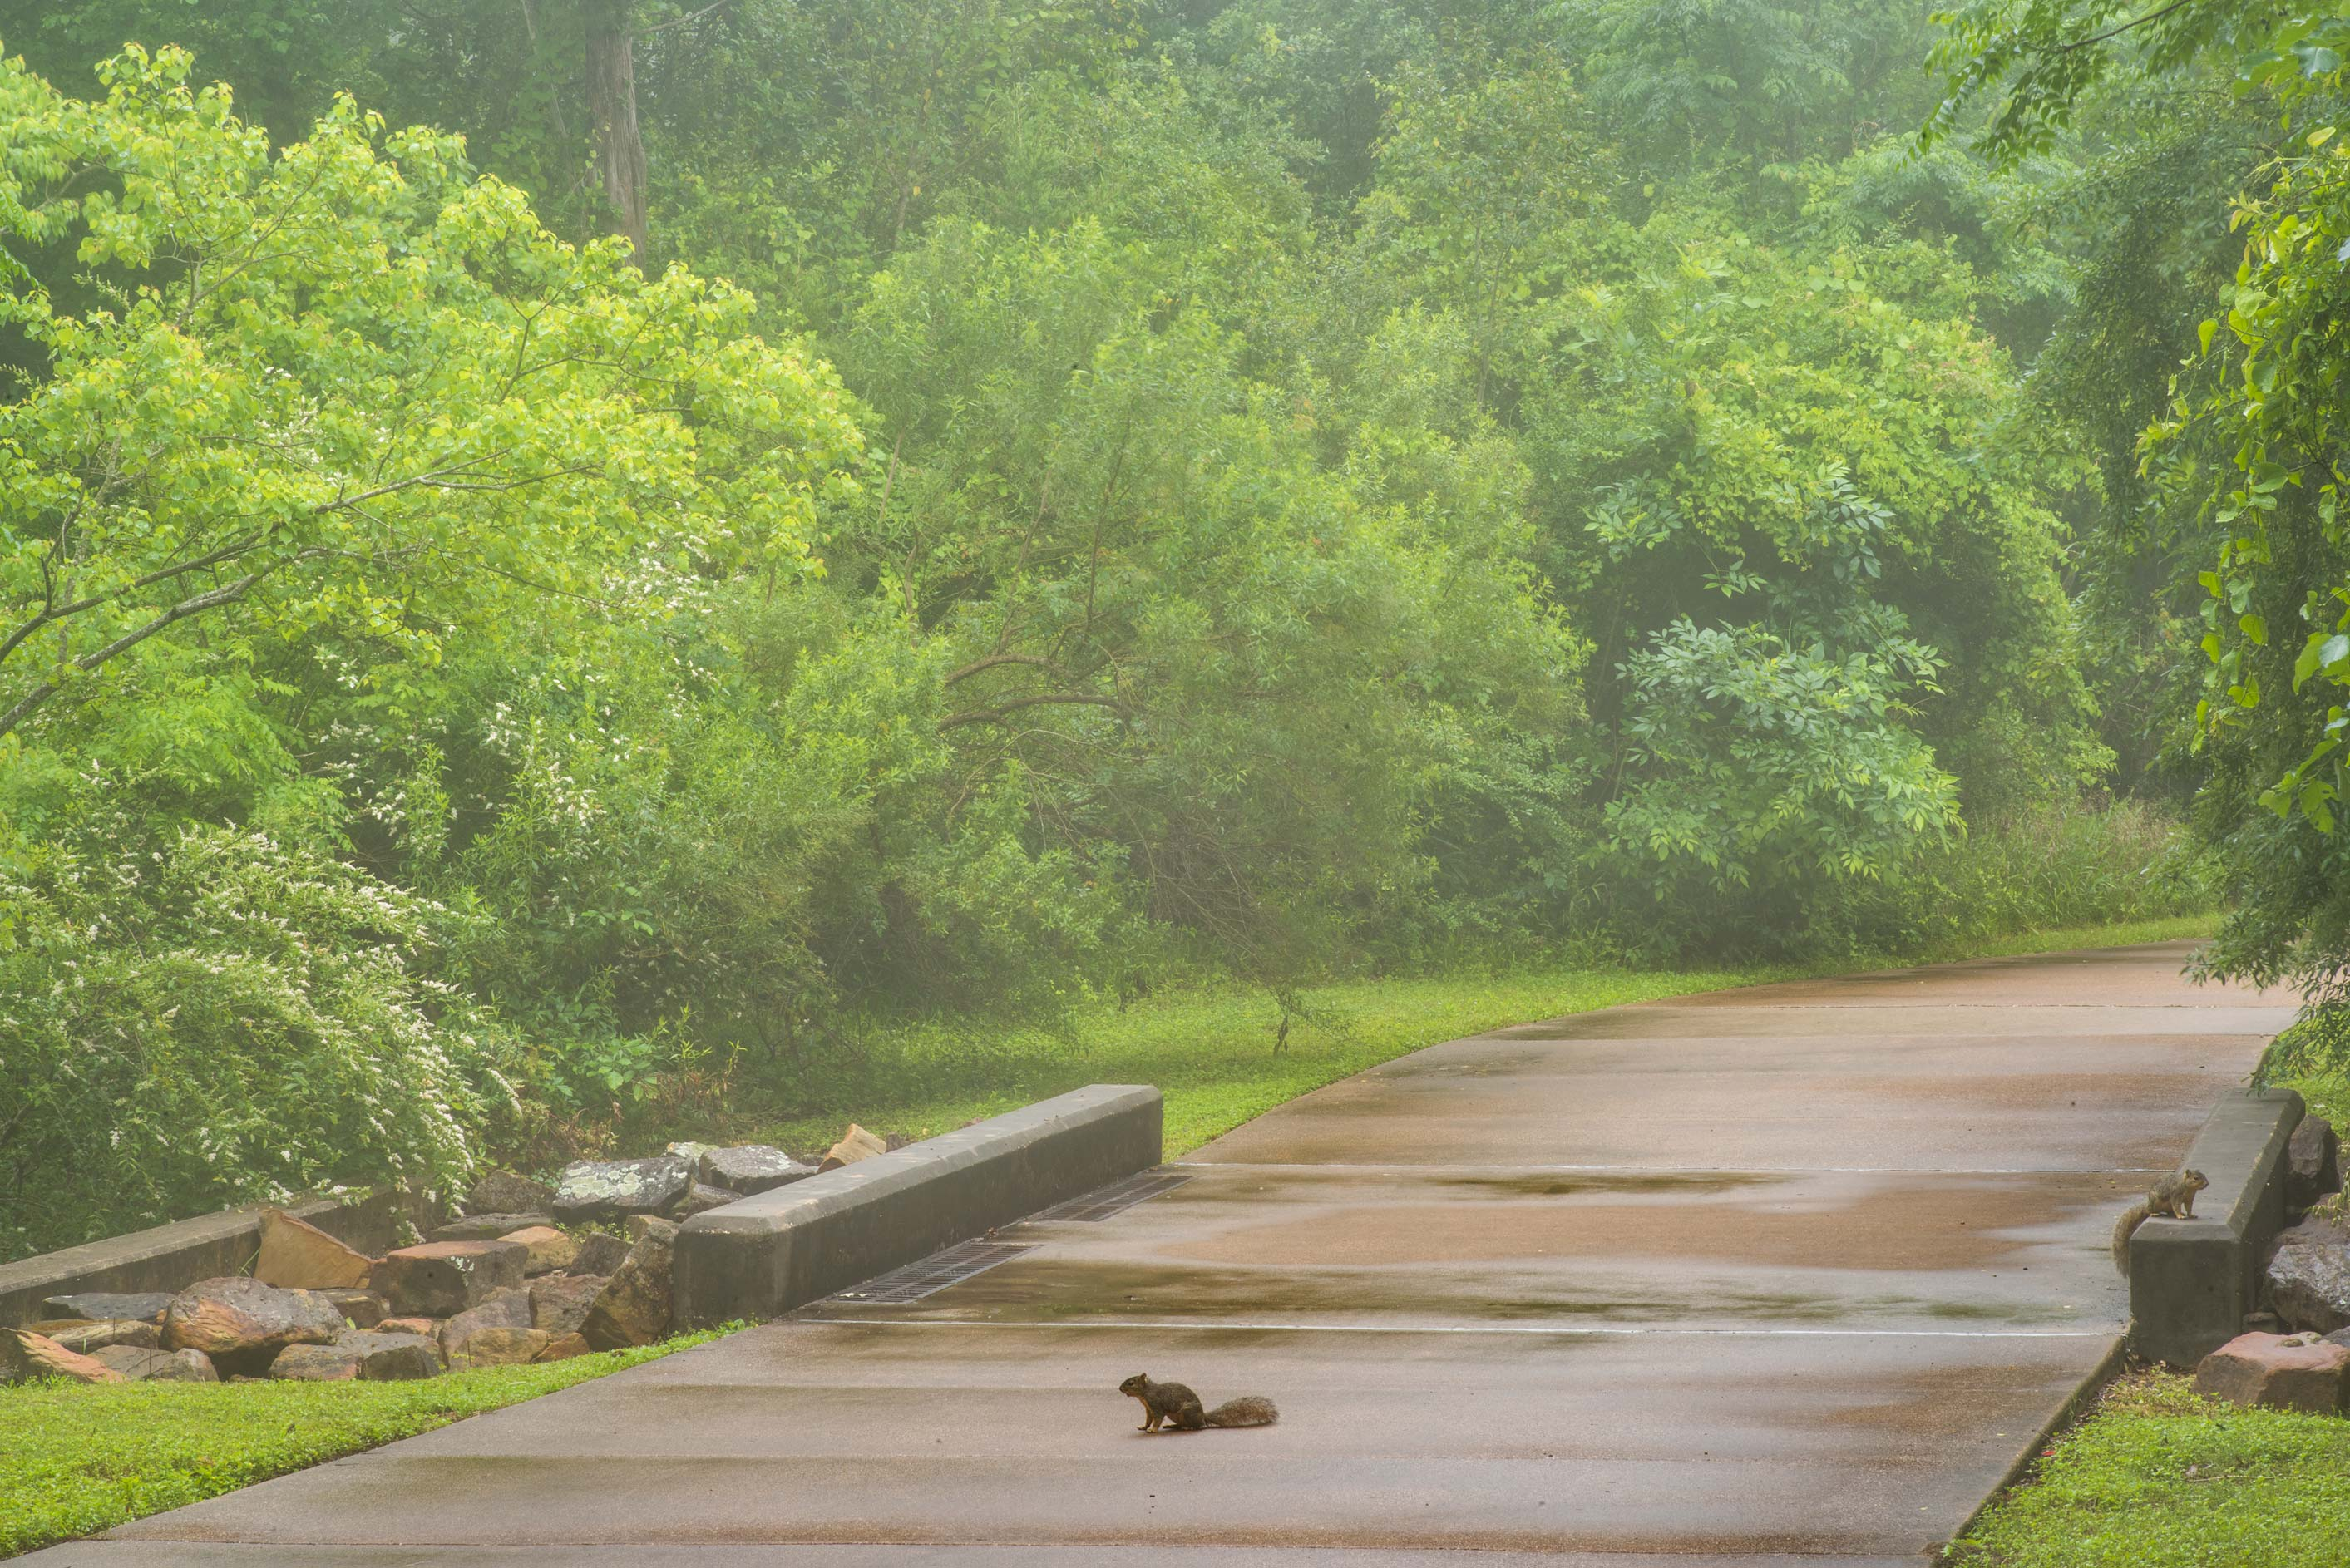 Squirrels on a stone bridge in Wolf Pen Creek Park. College Station, Texas